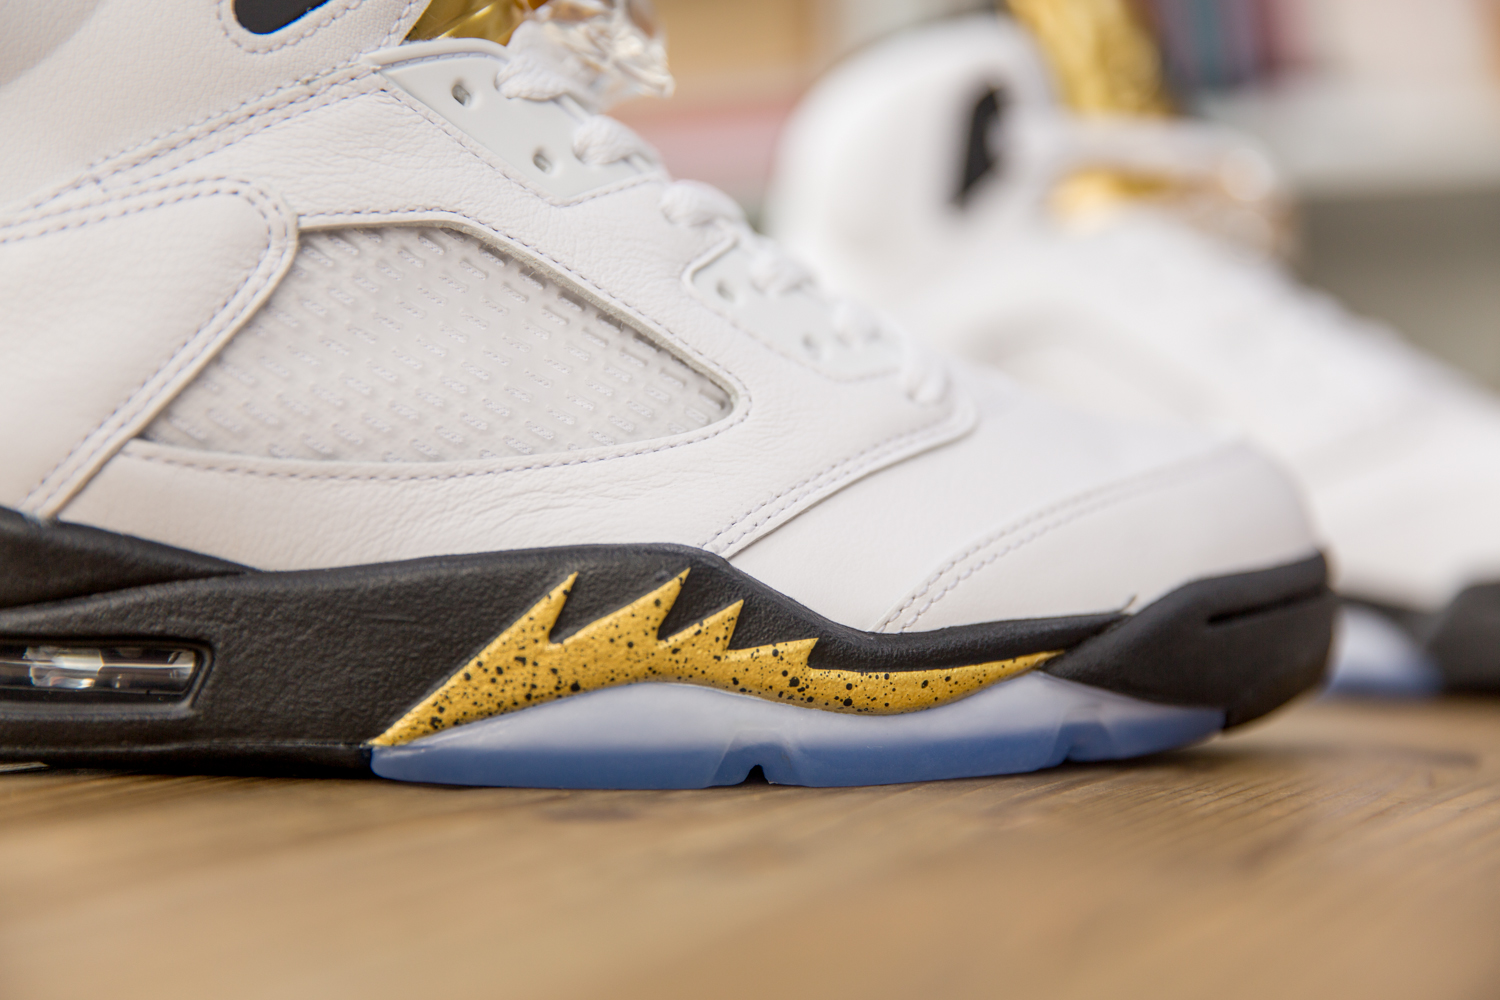 Air Jordan V OG White/Metallic Gold